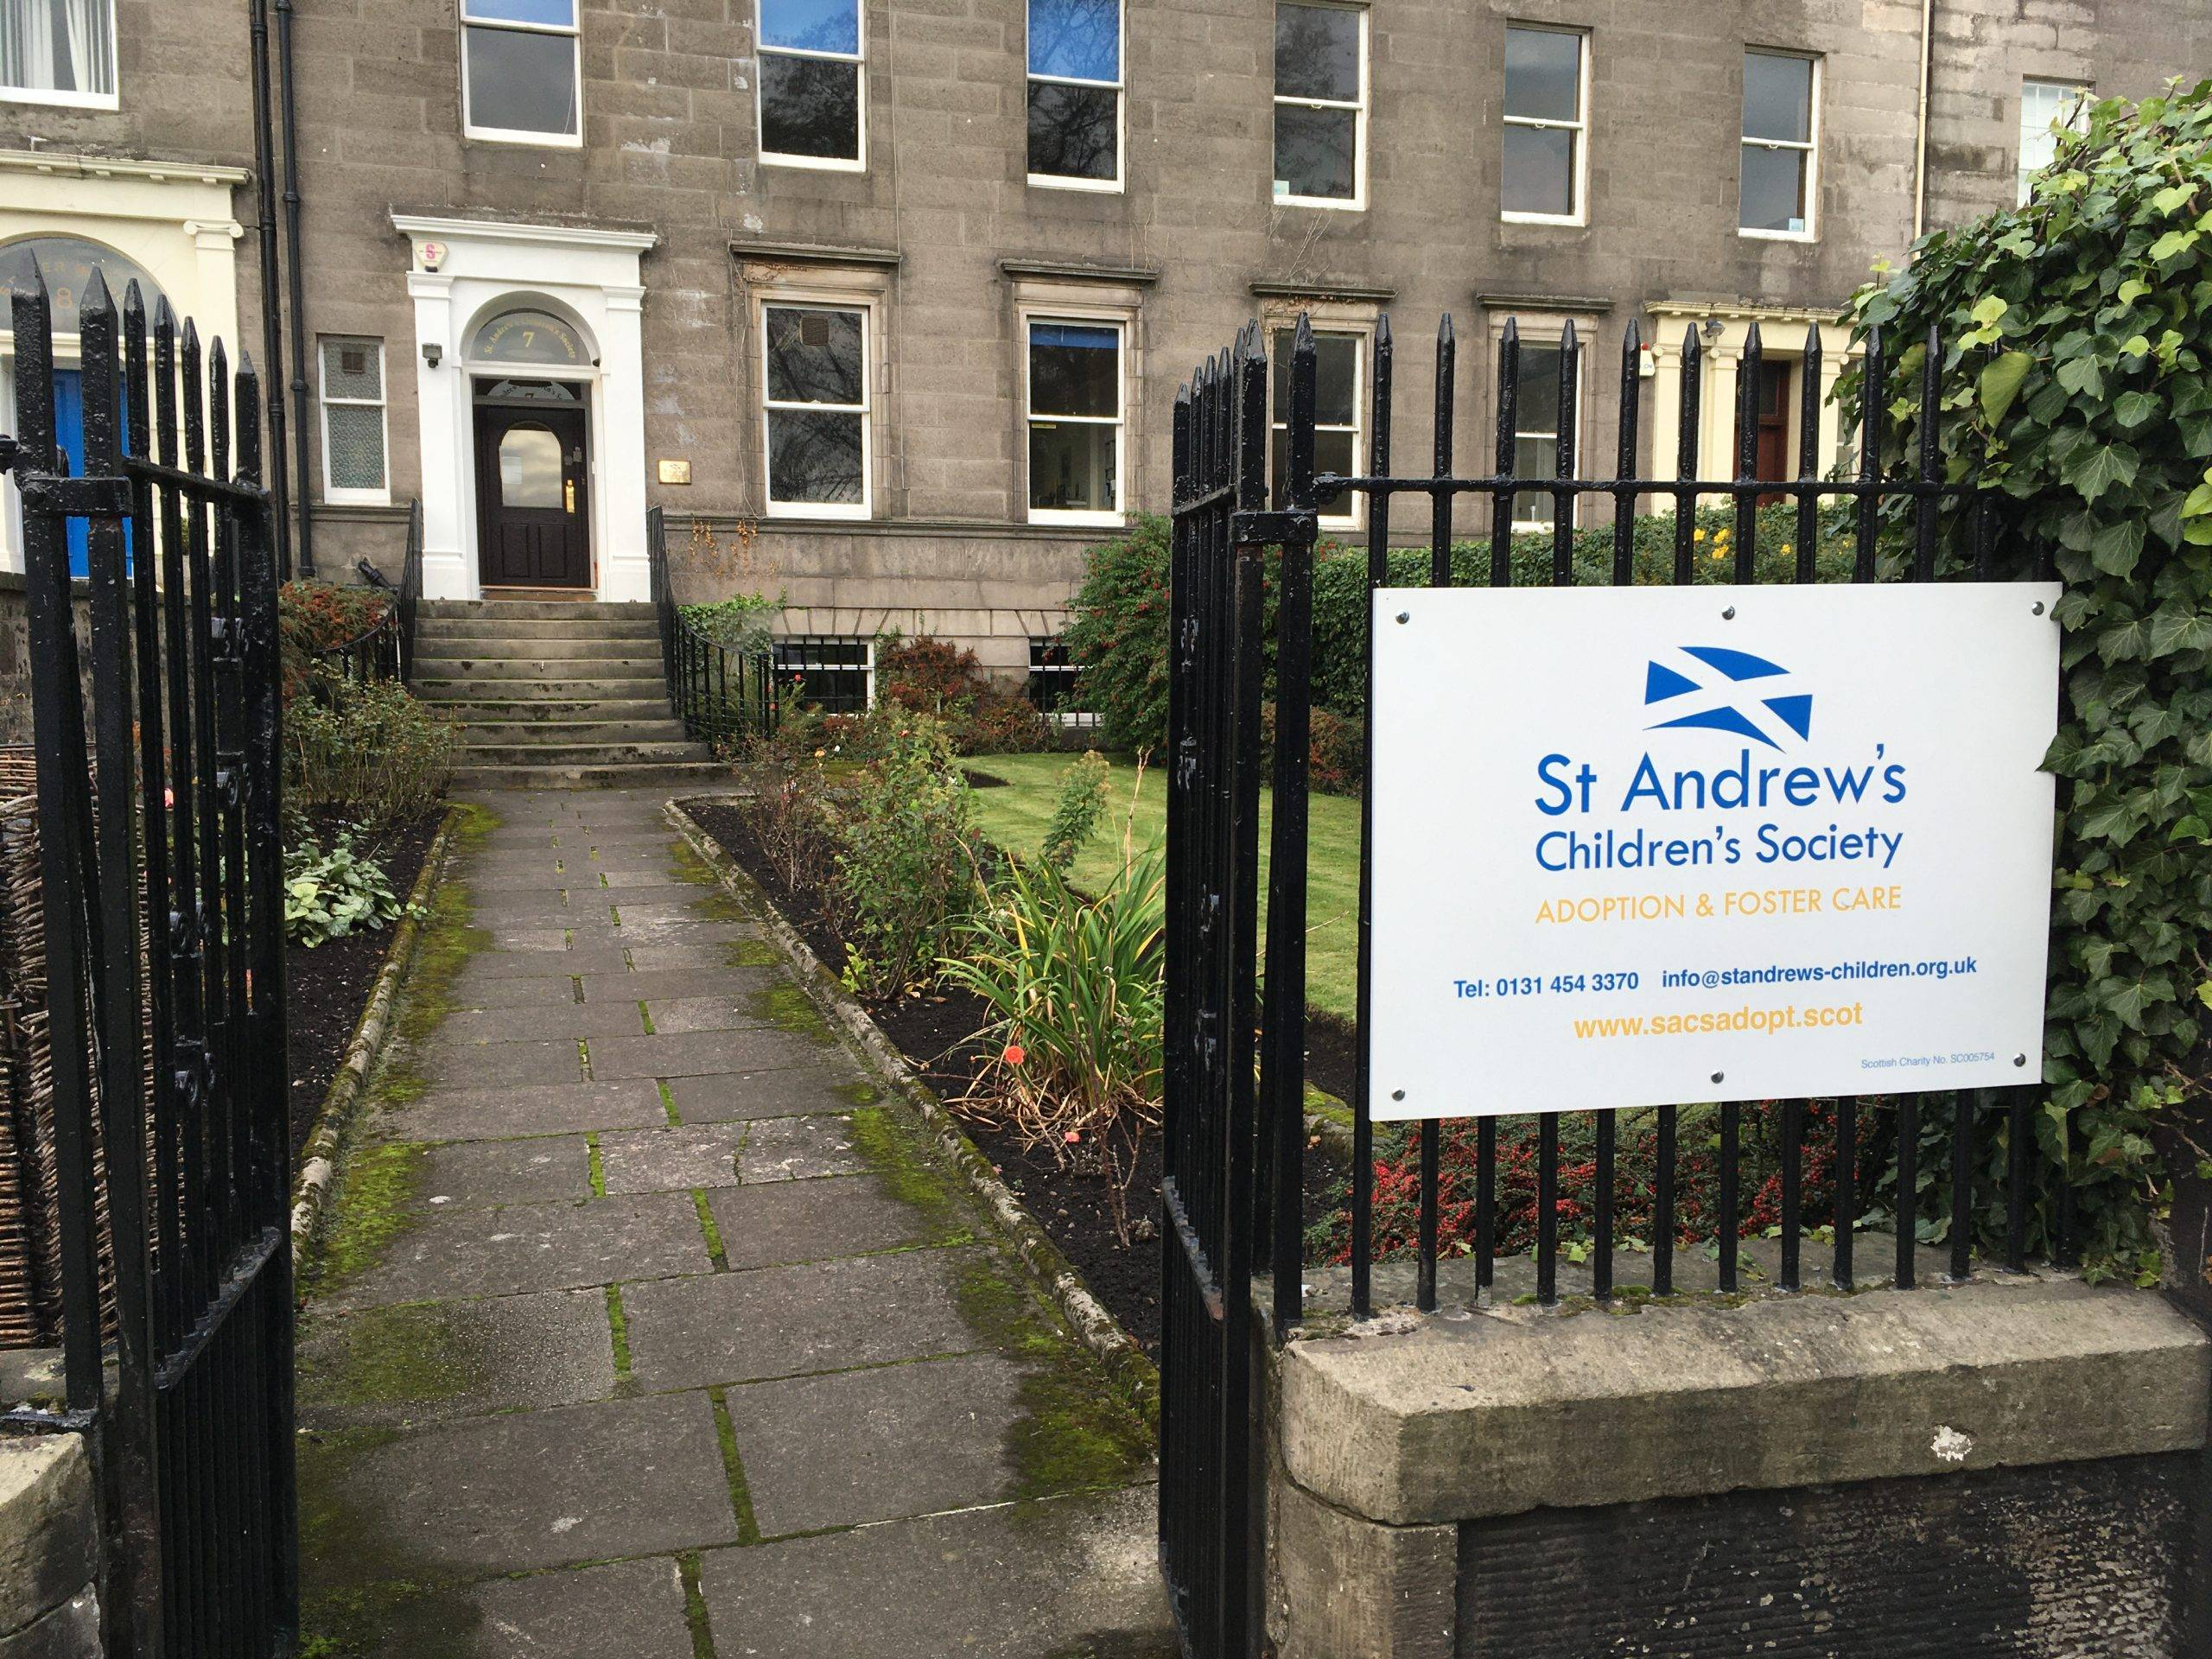 outside view of the Edinburgh office to help people contact us